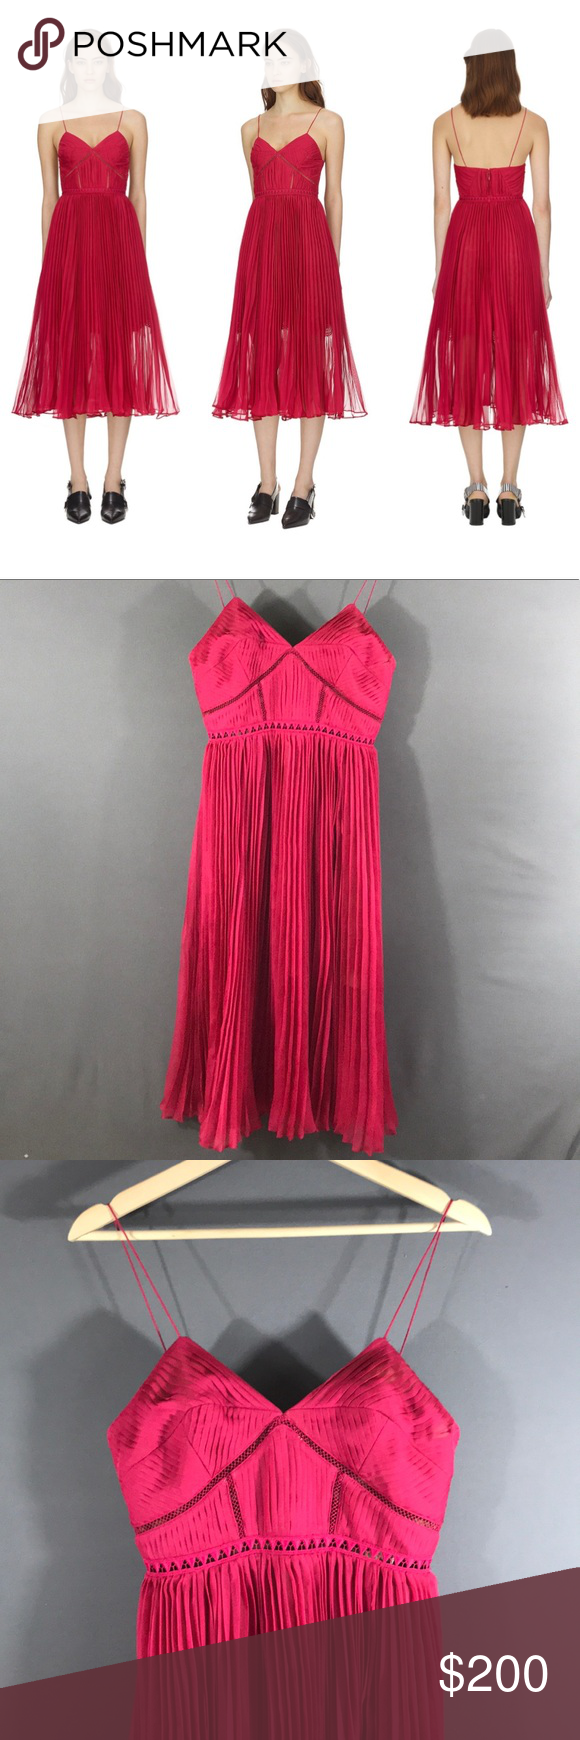 1ed304731cb9 Self-Portrait fuchsia pleated chiffon midi dress This item is brand new  with tag 100% Authentic Self- Portrait Fuchsia pleated chiffon midi dress  Cut from ...